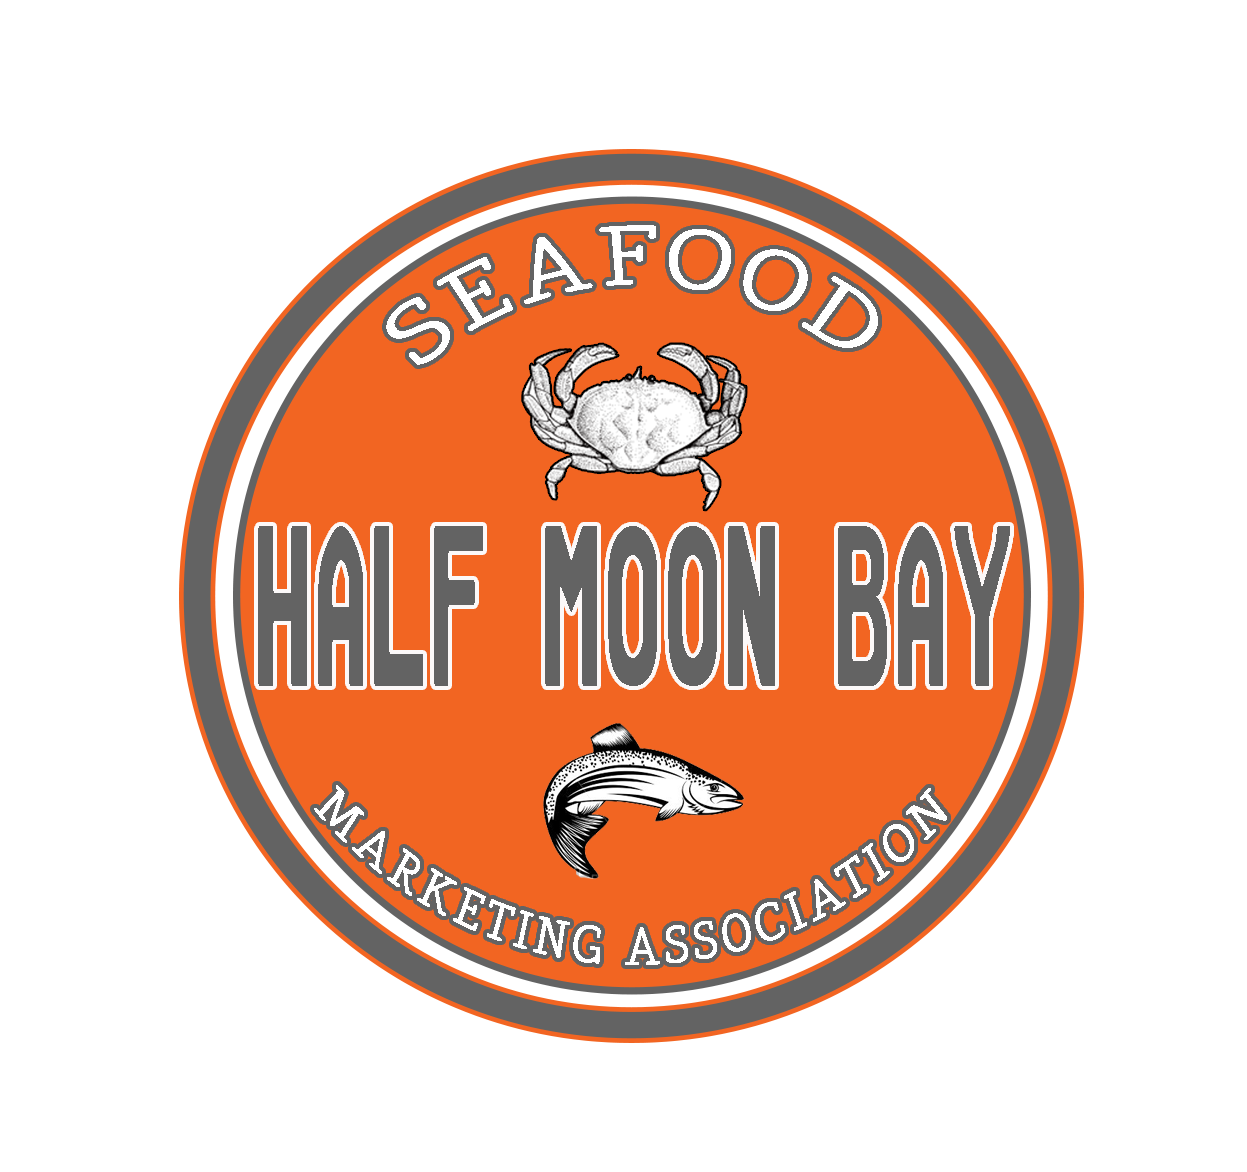 Half Moon Bay Seafood